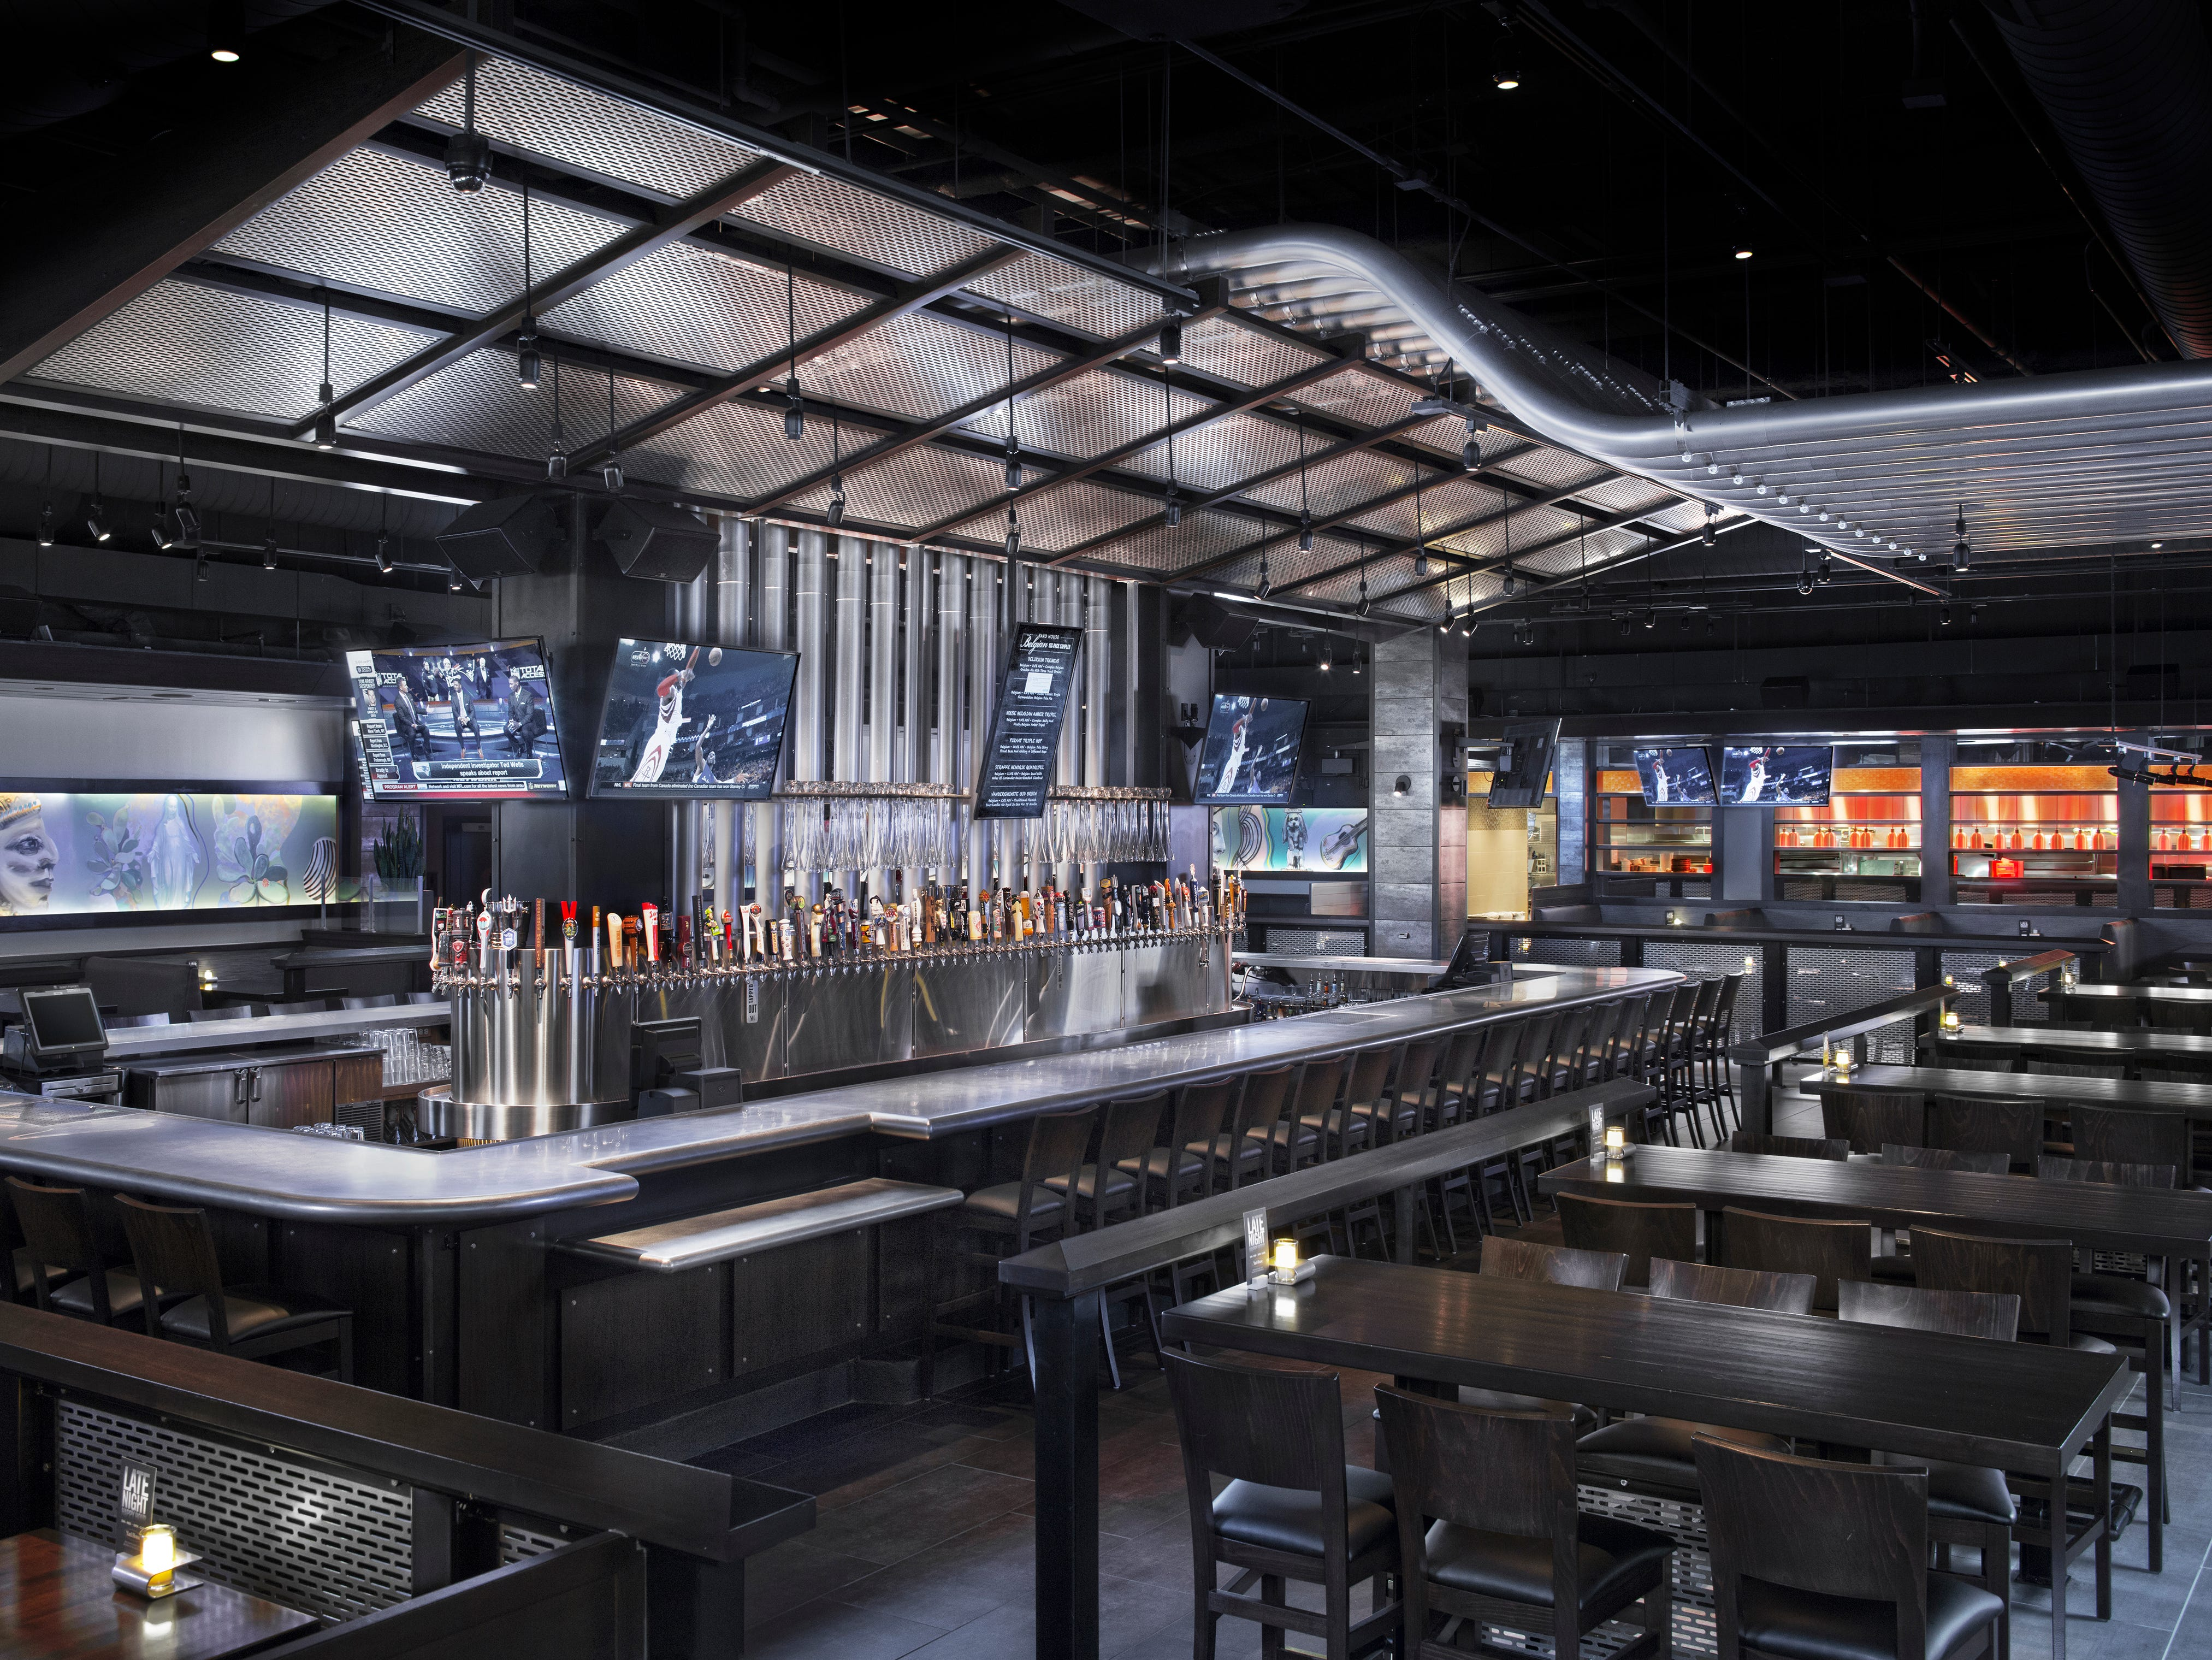 Yard House restaurant and bar, which features more than 130 beers on tap, will open Jan. 21, 2019, in Park Shore Plaza on U.S. 41 in Naples.